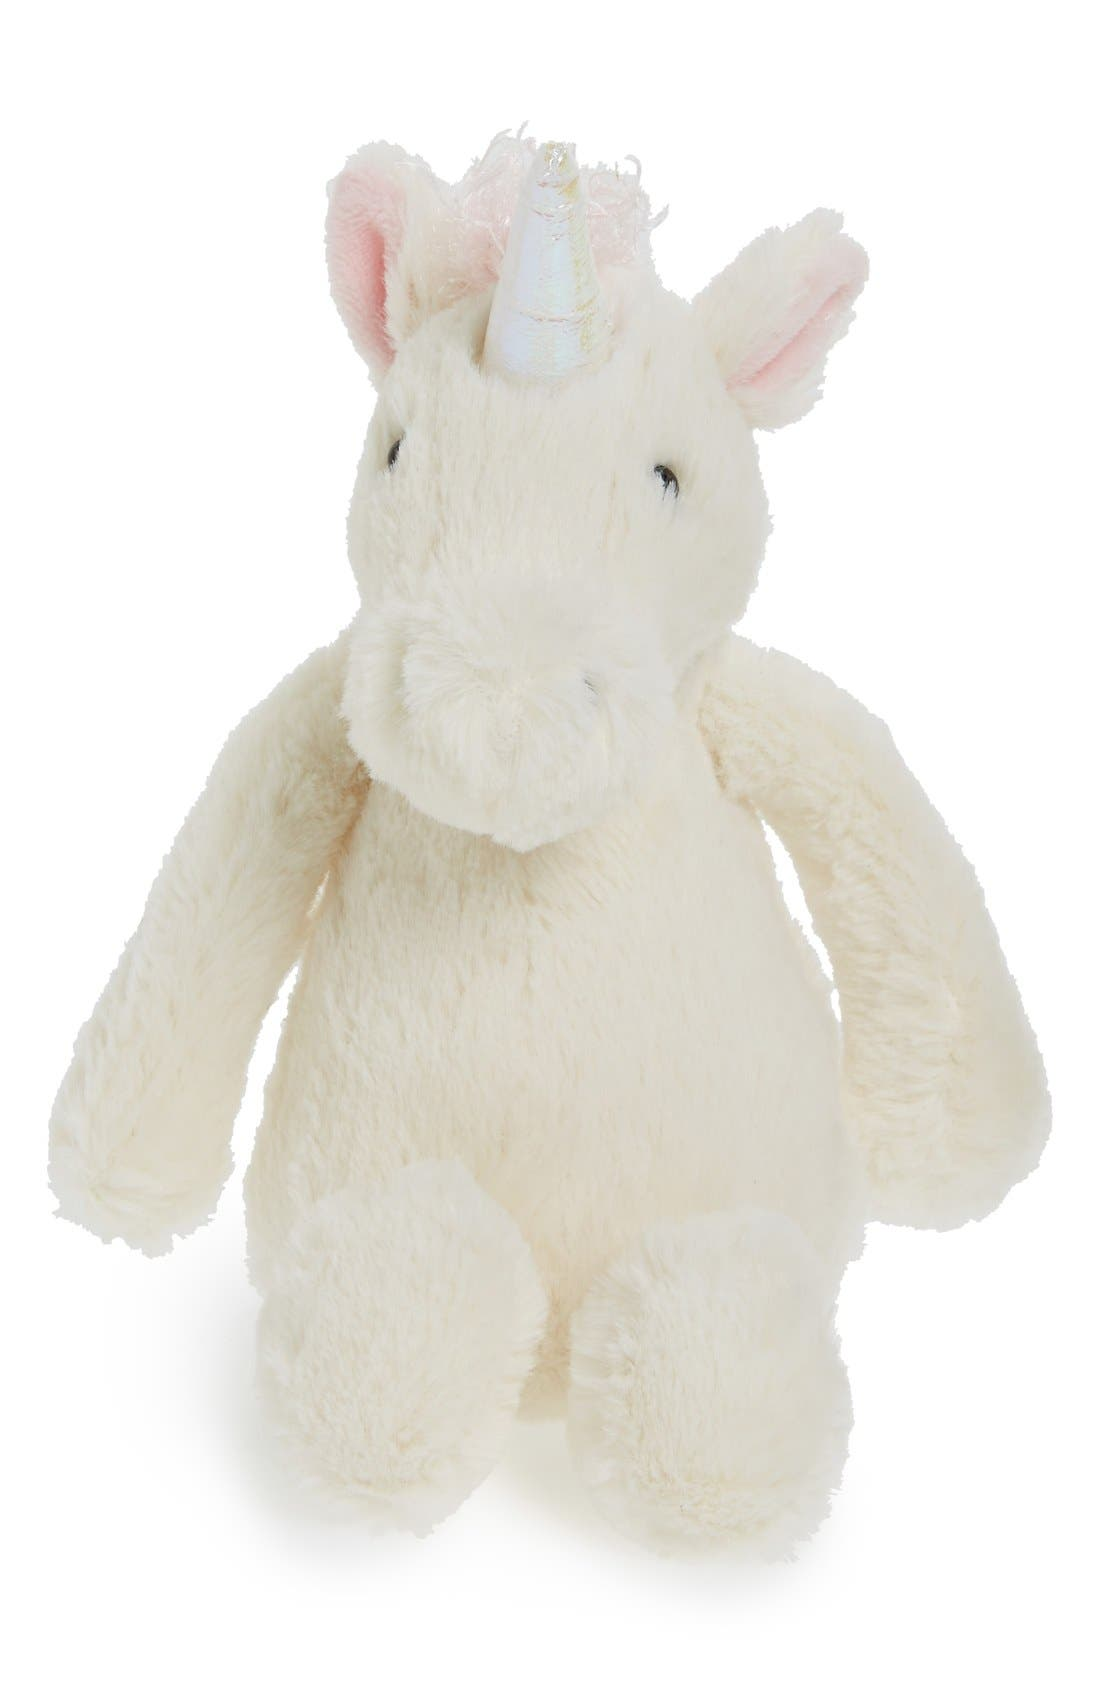 JELLYCAT 'Small Bashful Unicorn' Stuffed Animal